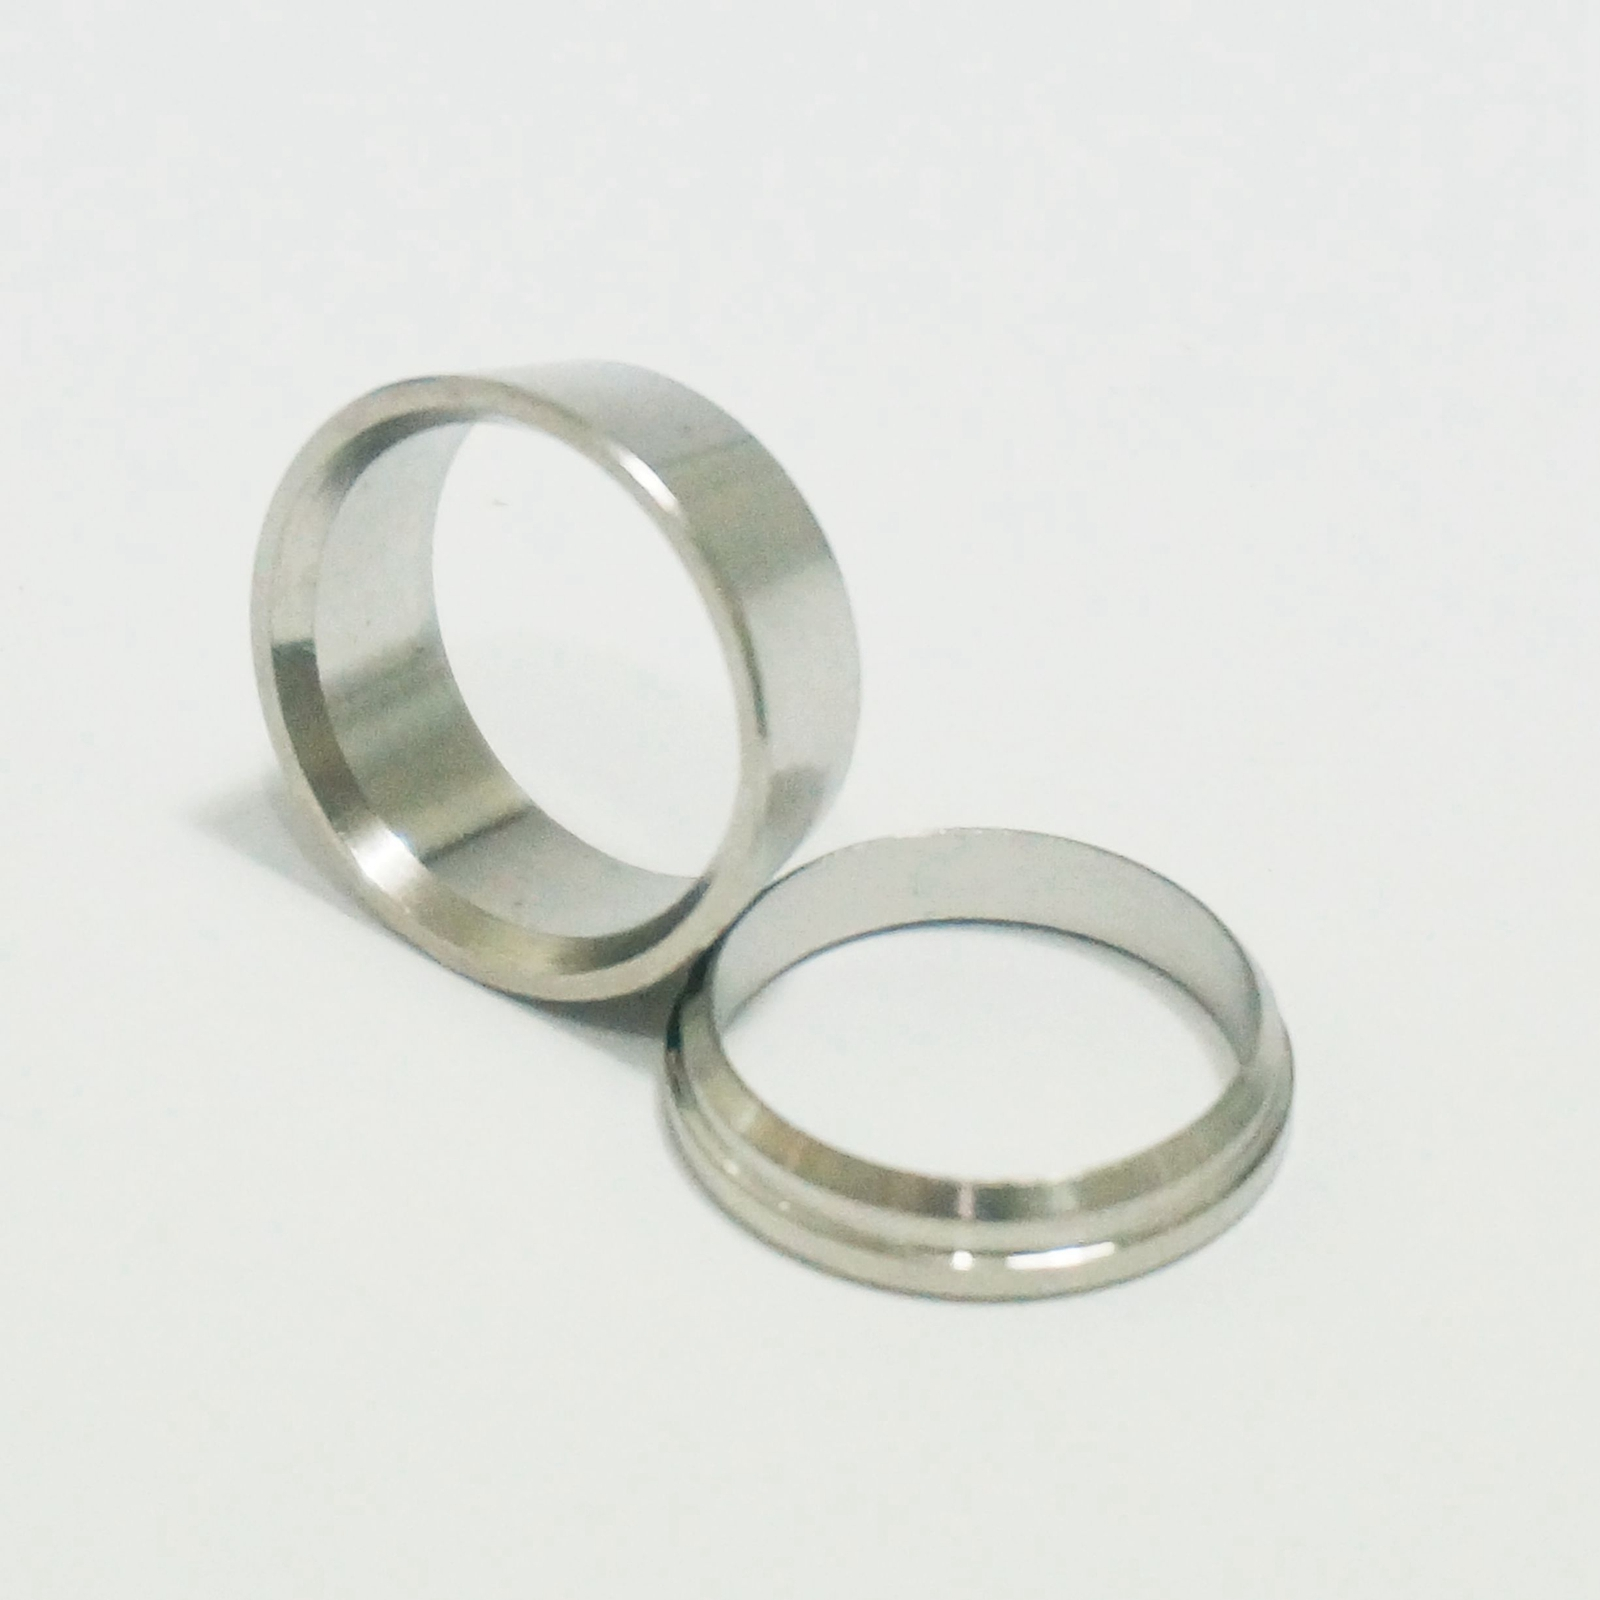 Lot stainless compression sleeves ferrule ring for